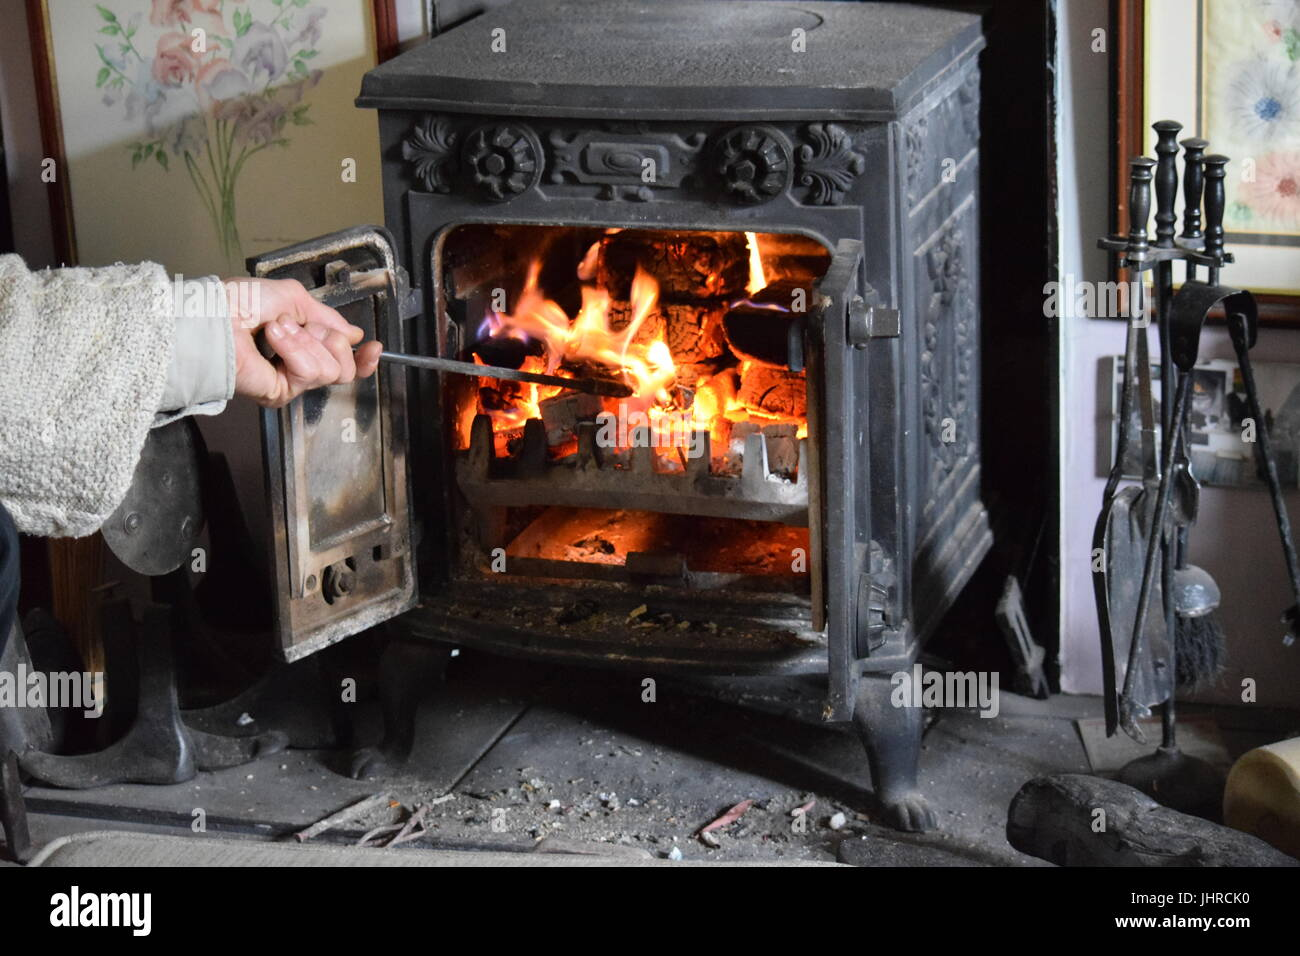 The stove - Stock Image